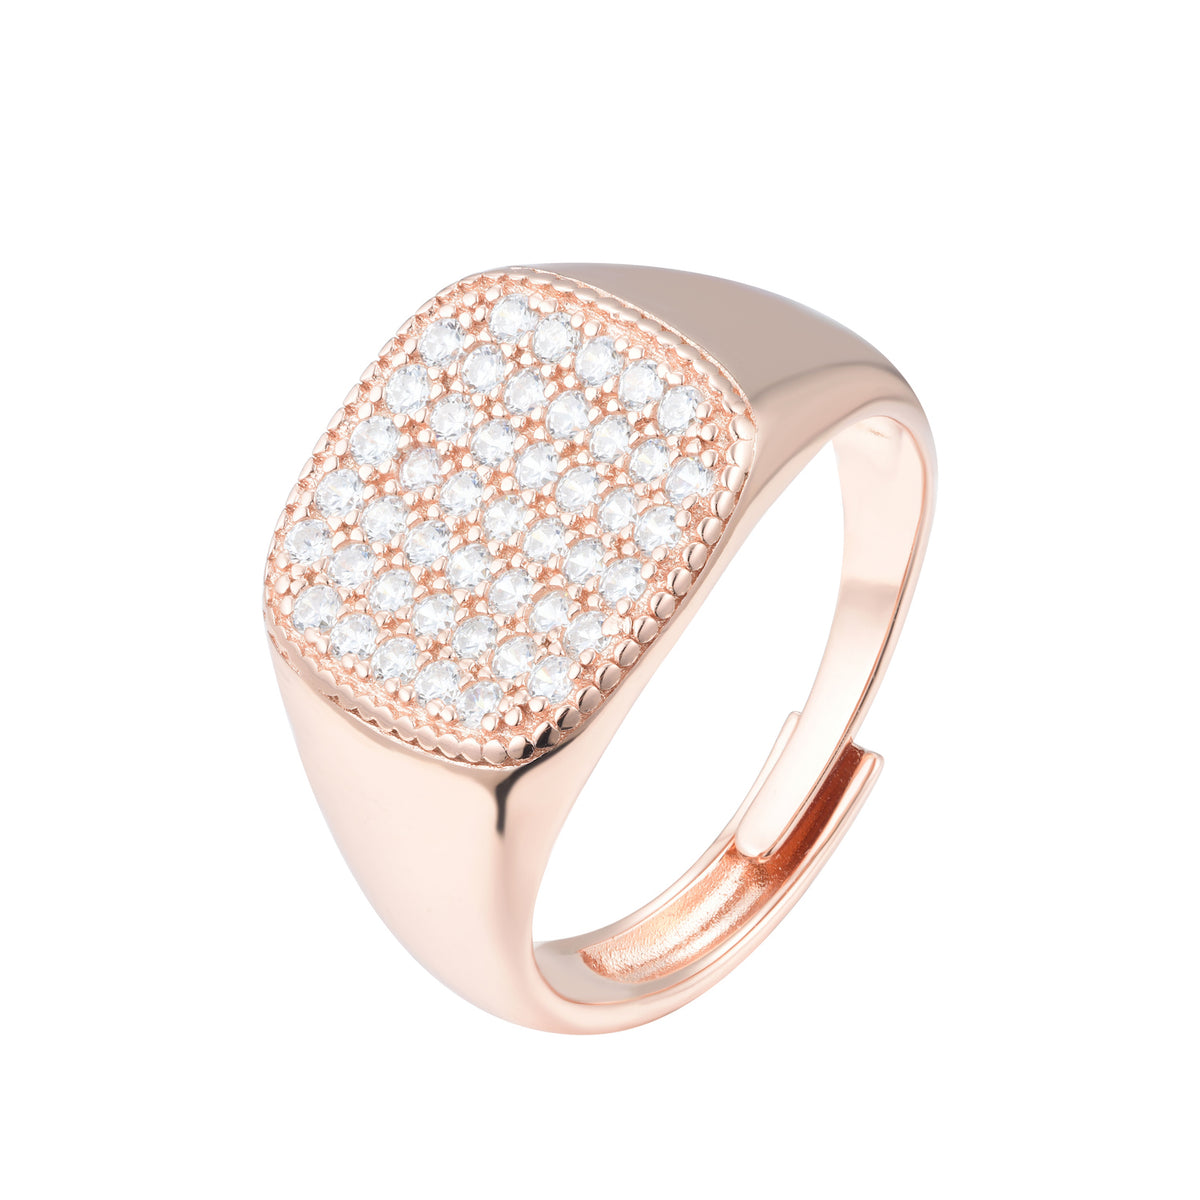 Fortuna | San Gimignano Ring | 925 Silver | White CZ | Rose Gold Plated